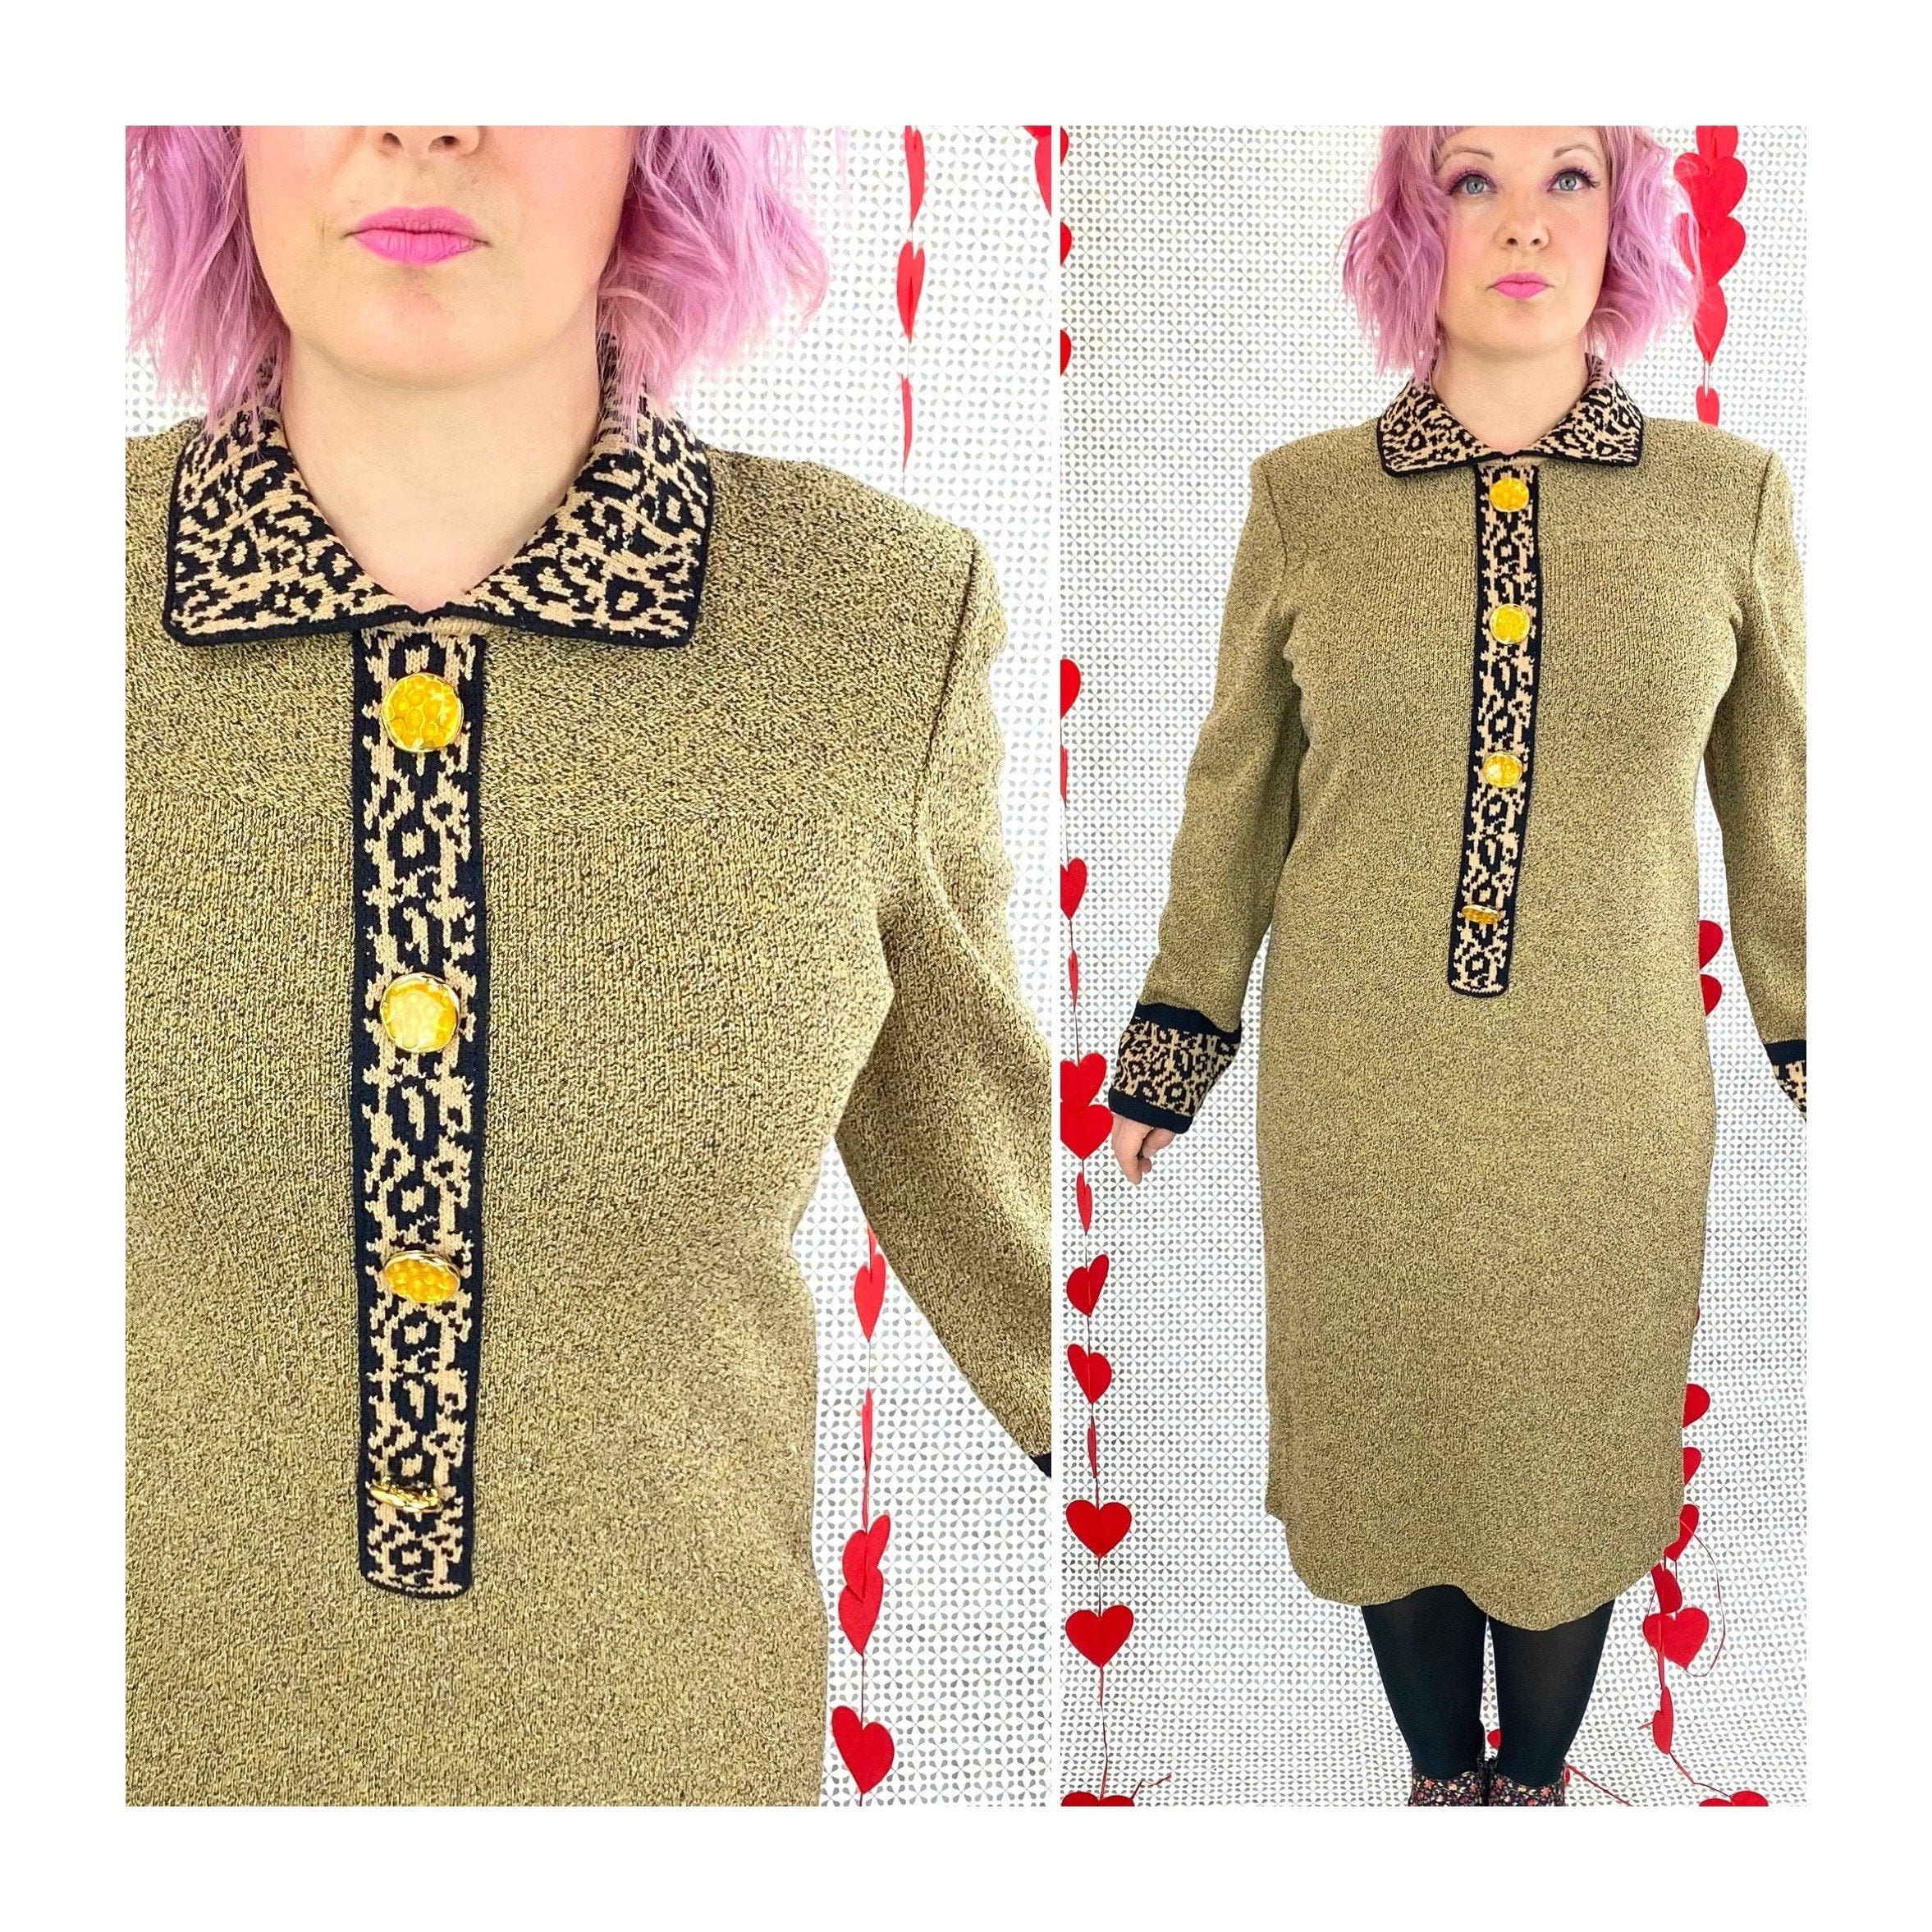 80s Dresses   Casual to Party Dresses 1980S Leopard Print Sweater Dress, 80S Knit Long Sleeve Winter Midi, Collared, Shoulder Pad  Large - Extra Xl $0.00 AT vintagedancer.com